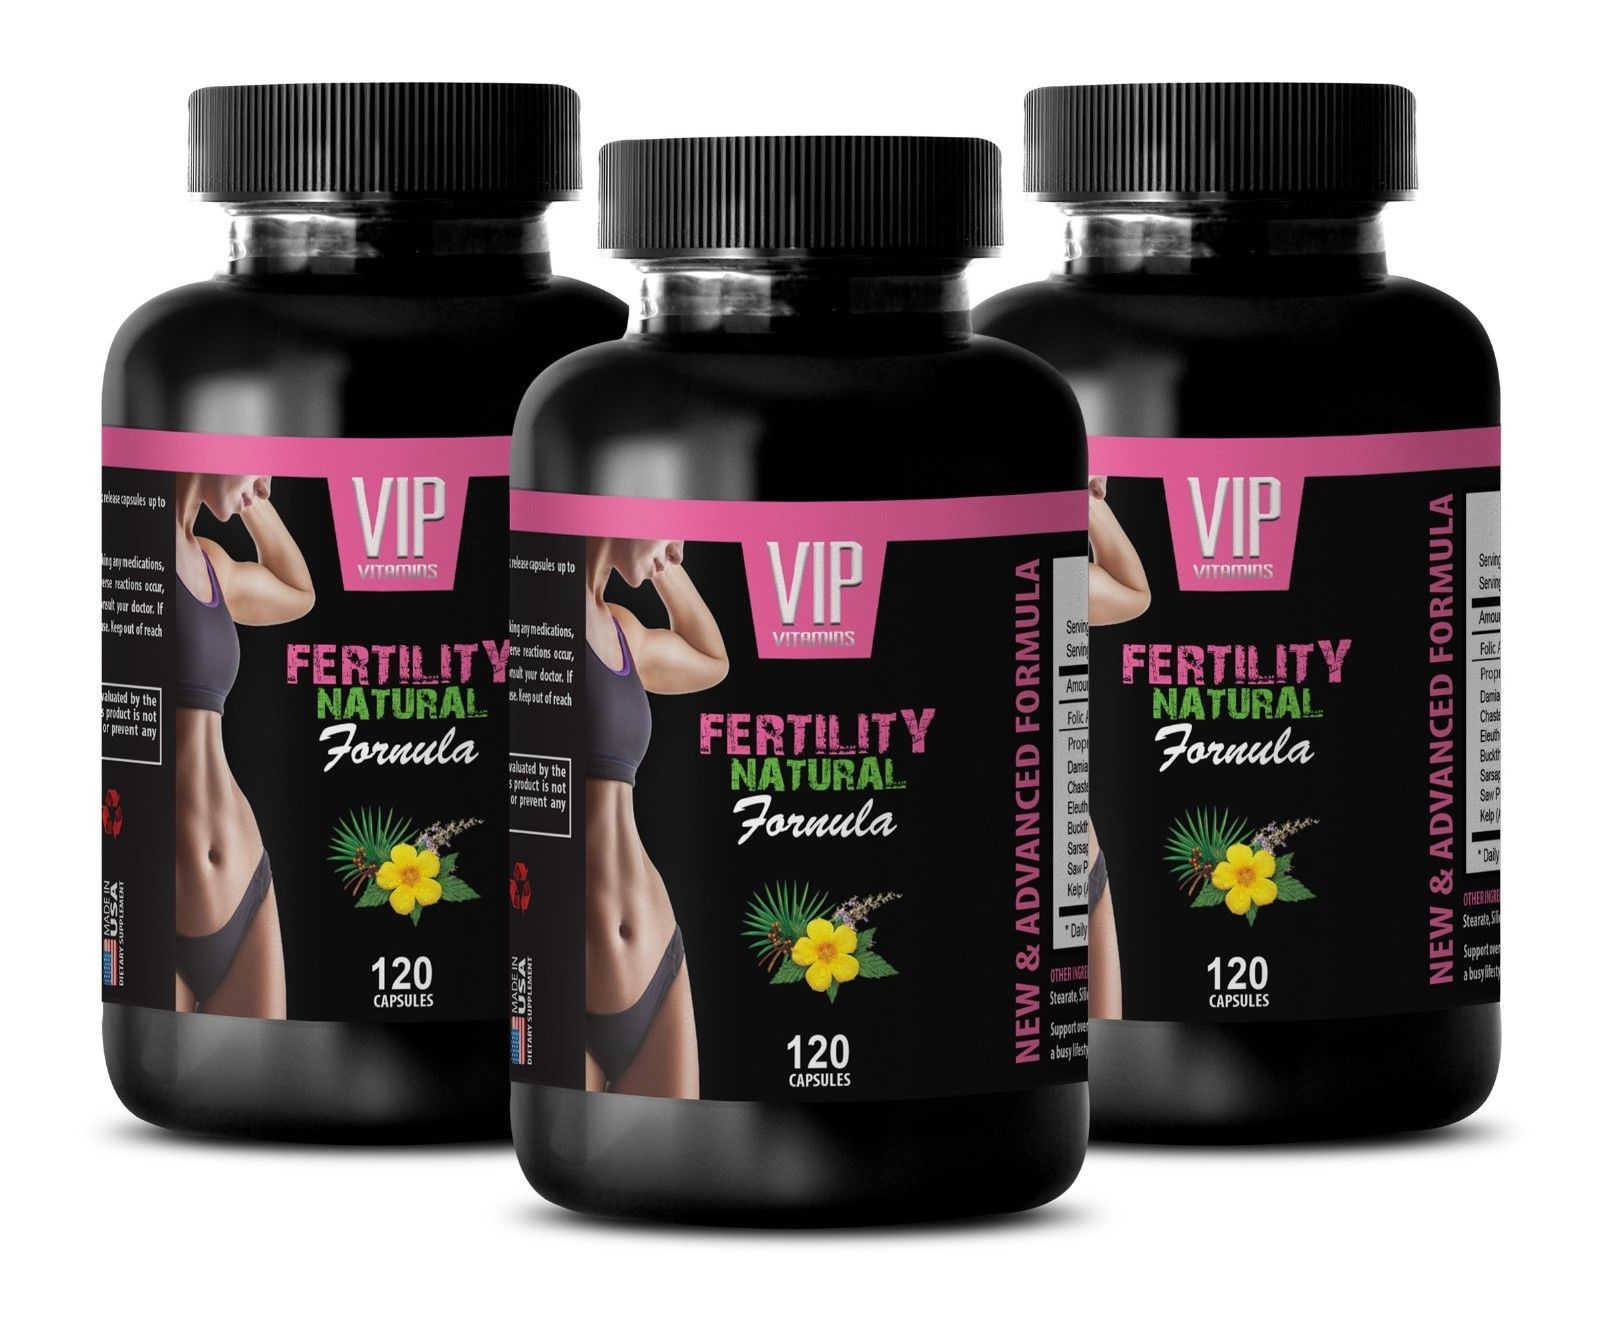 enhancement all natural -3B FERTILITY NATURAL 360 CAPSULES - folate women - $33.62